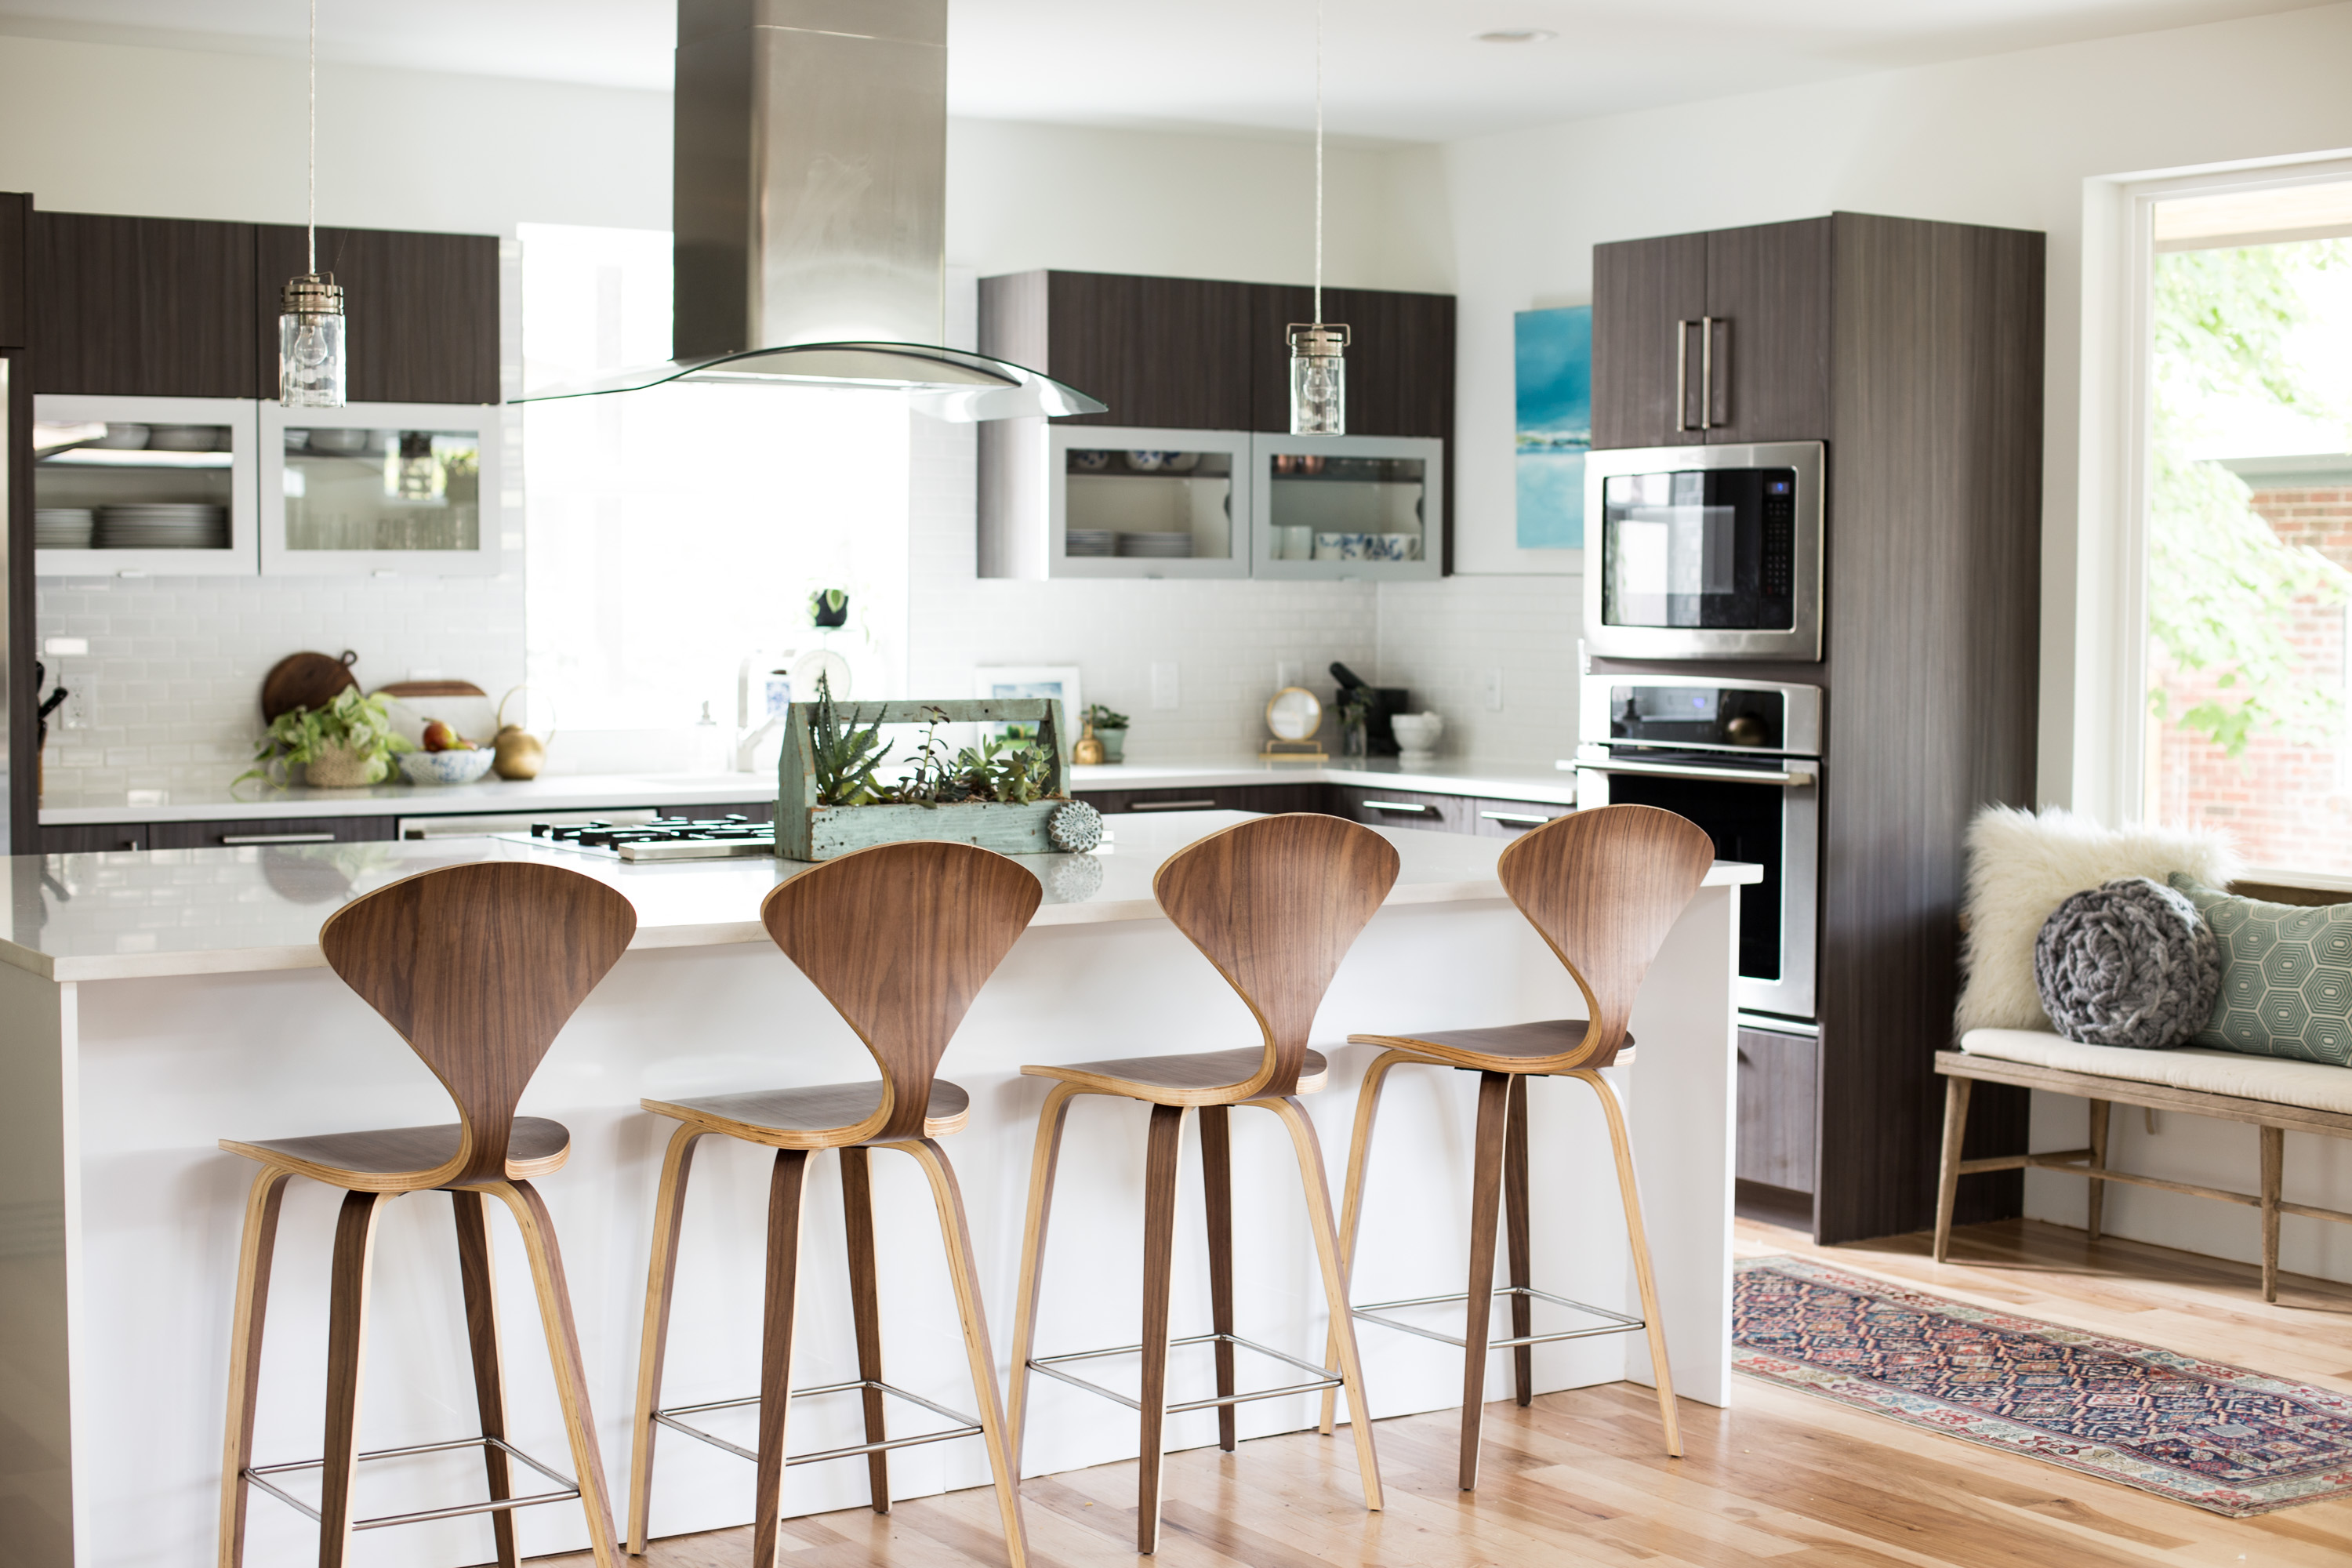 Trend Mid Century Style Counter Stools from Rove Concepts